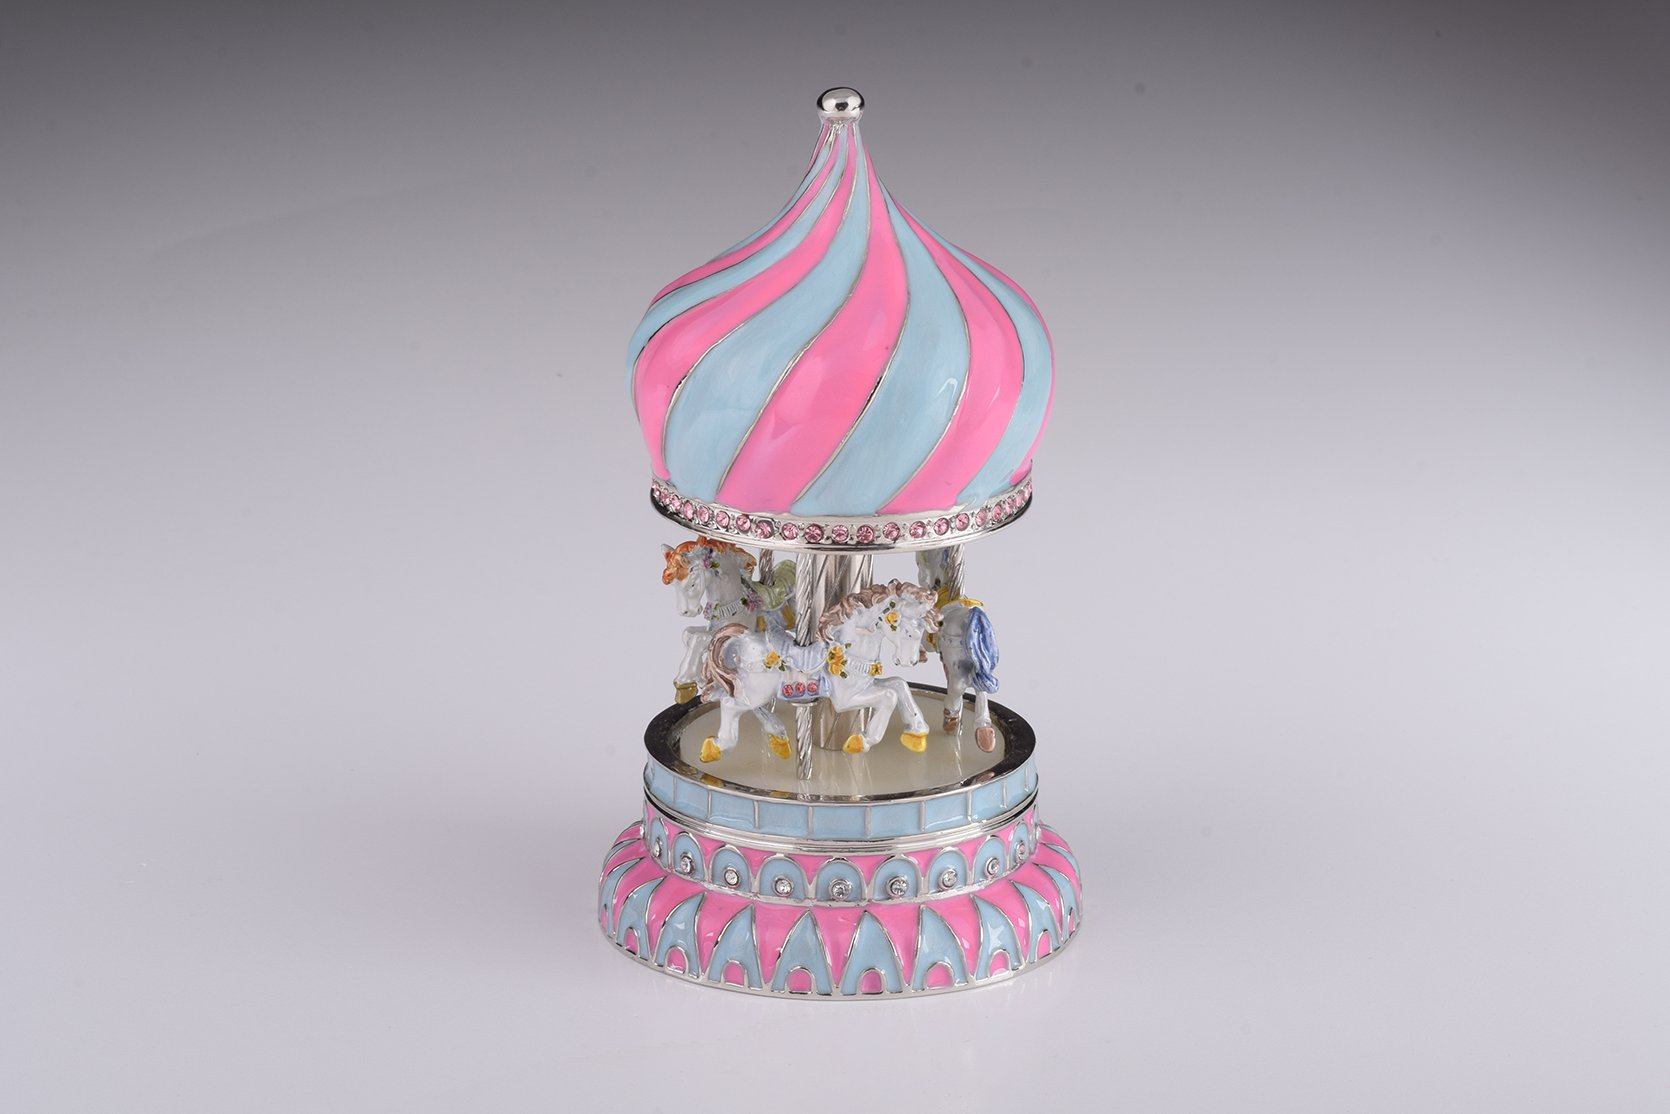 Pink Wind up Musical Carousel with Crystals